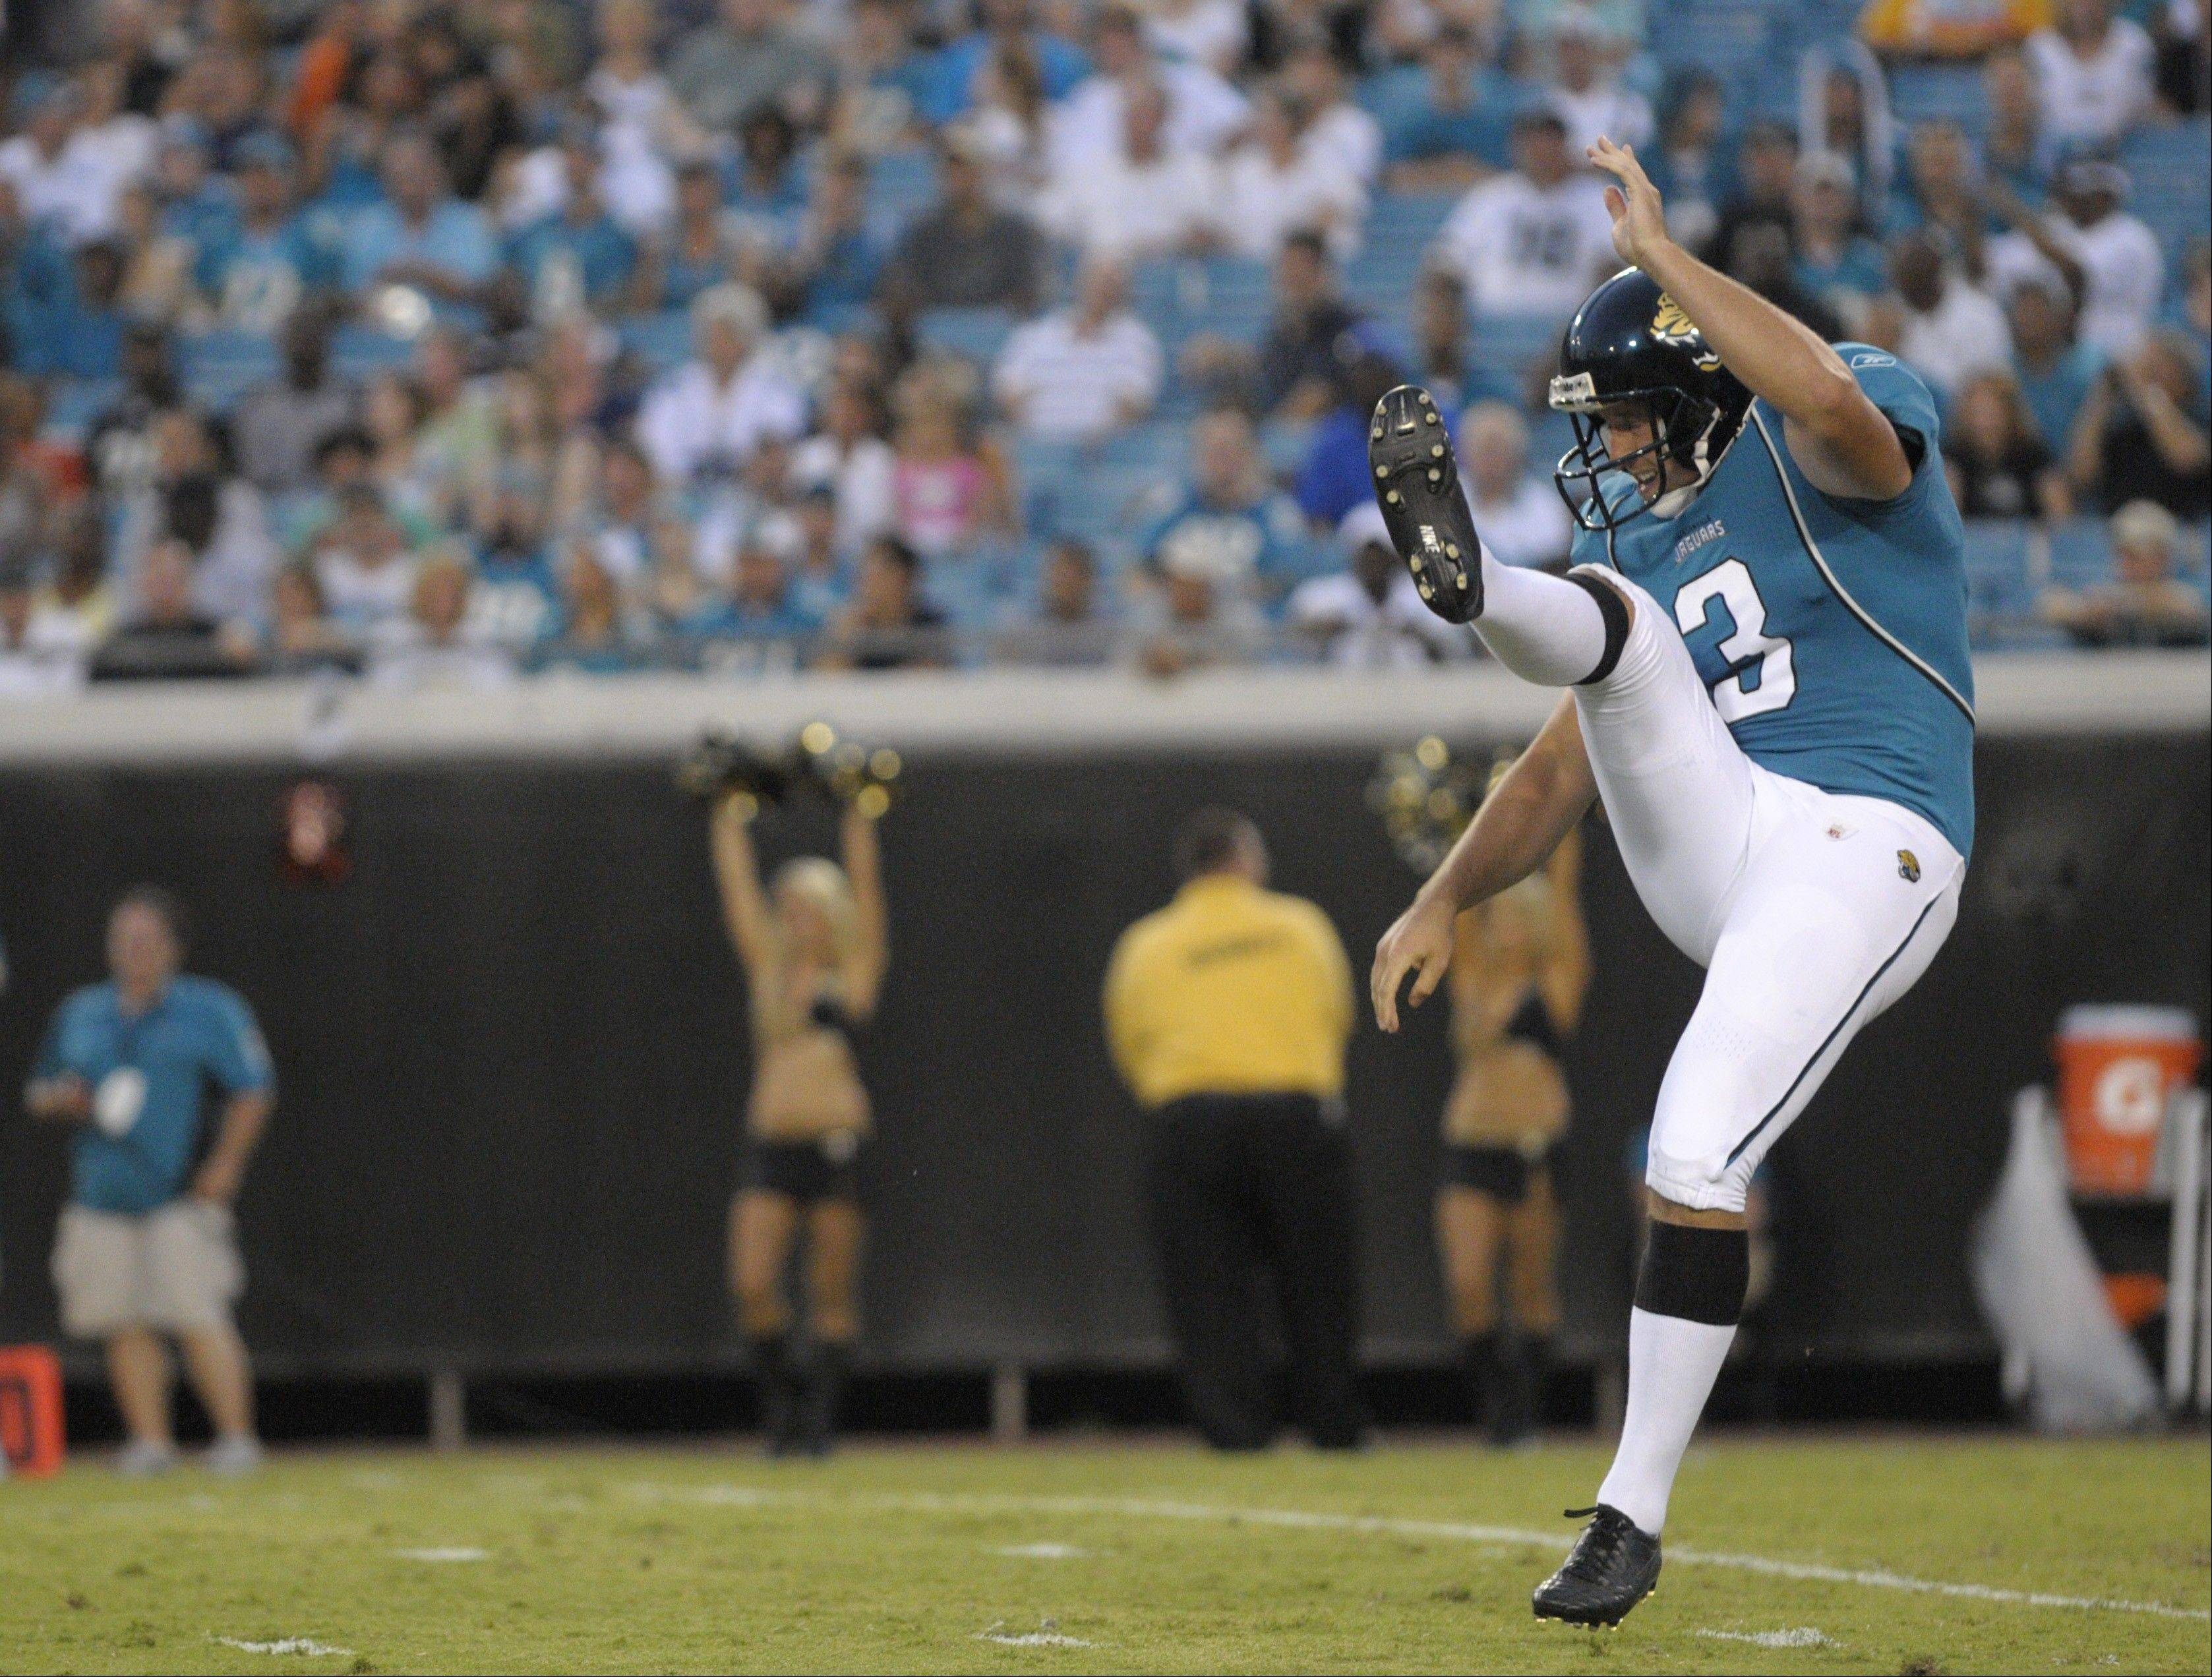 The Bears have reportedly agreed to a five-year deal with former Jacksonville punter Adam Podlesh. The 27-year-old punter was a Pro Bowl alternate last season.